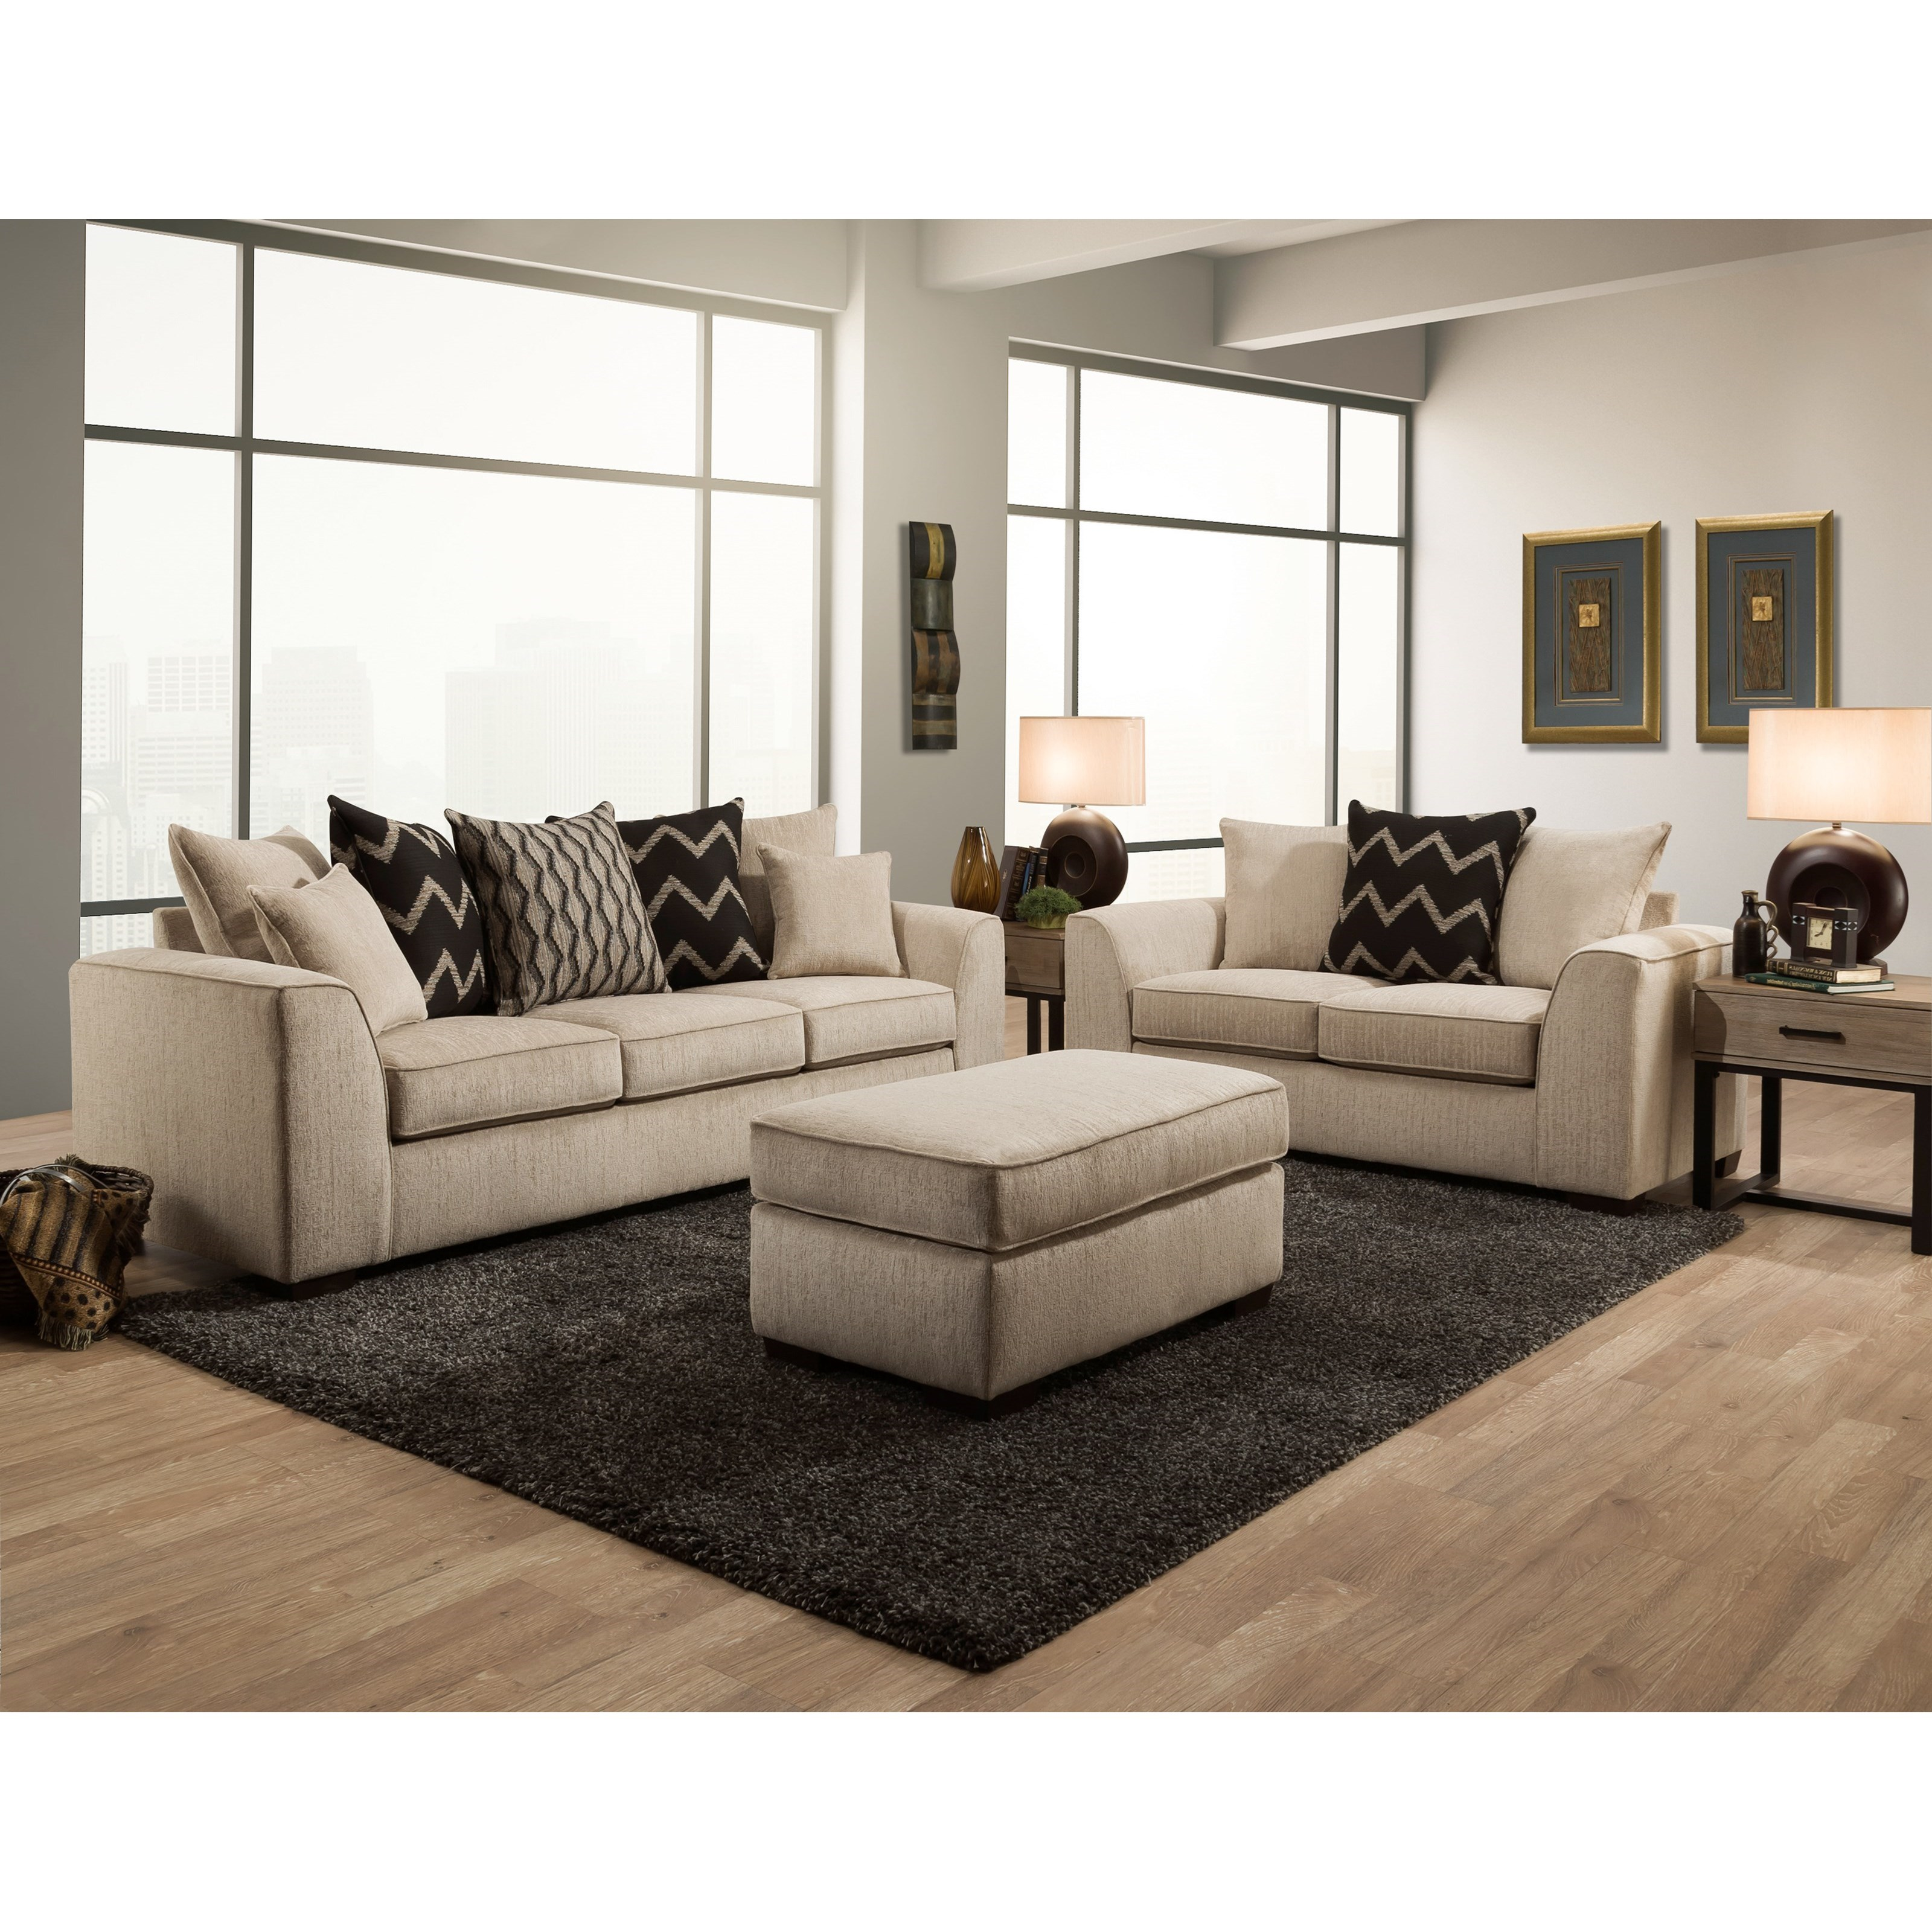 2600 Living Room Group by Peak Living at Prime Brothers Furniture